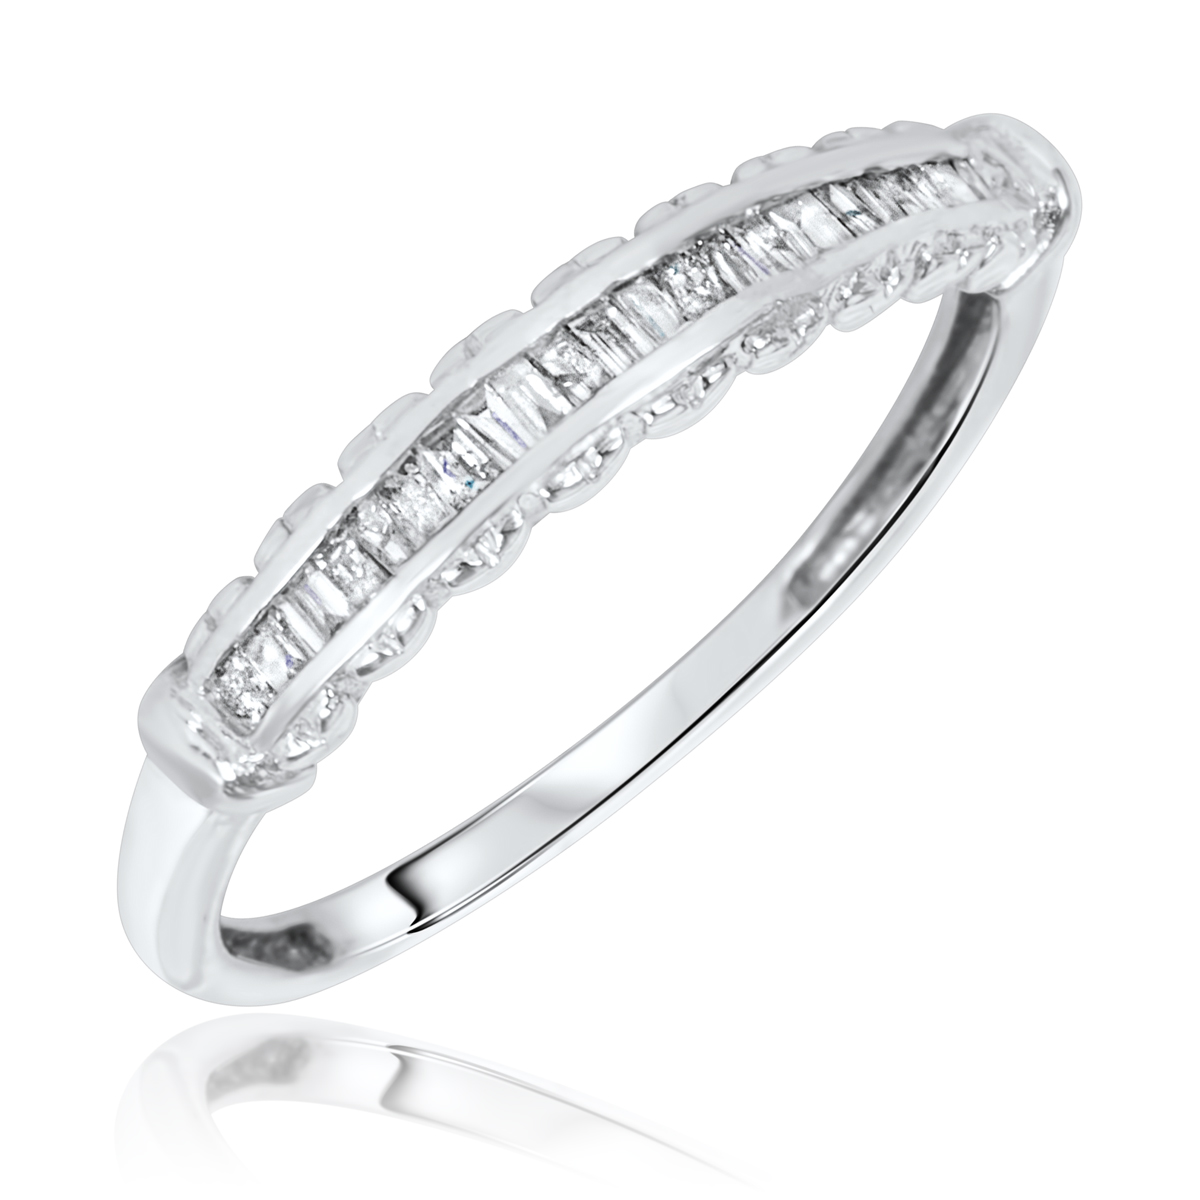 1/4 Carat T.W. Diamond Women's Wedding Ring 14K White Gold ...